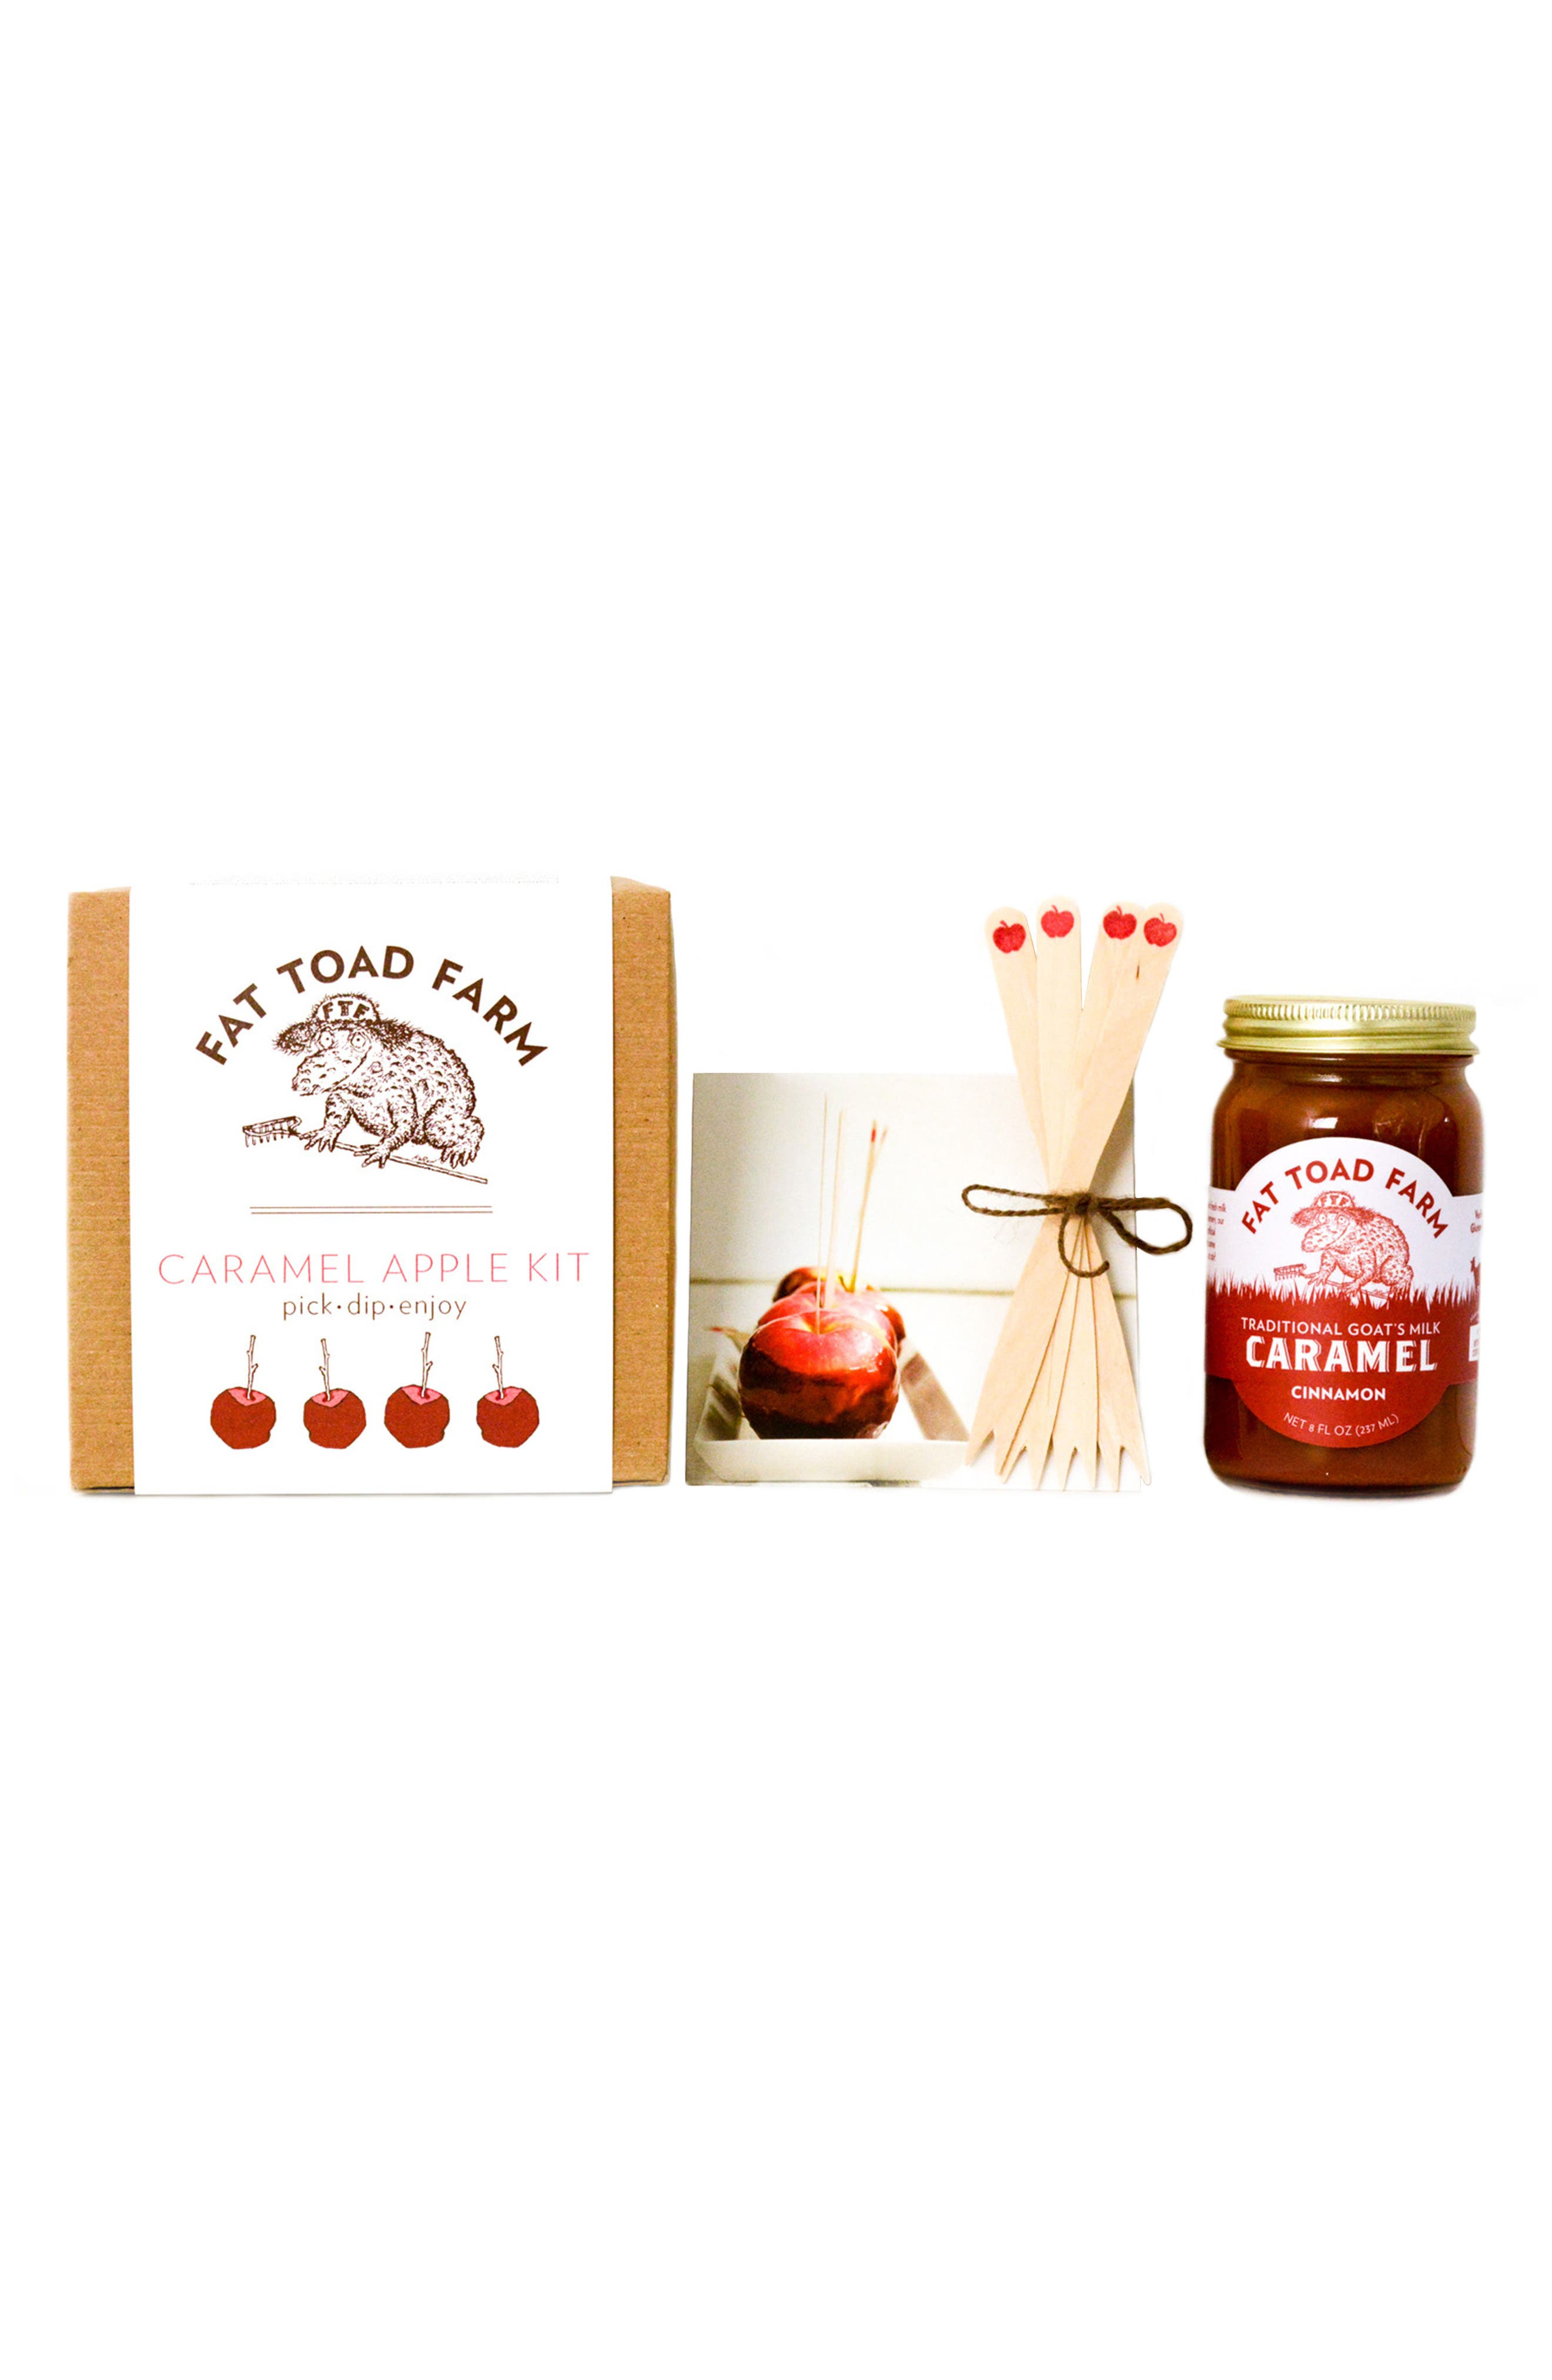 Main Image - Fat Toad Farm Caramel Apple Kit